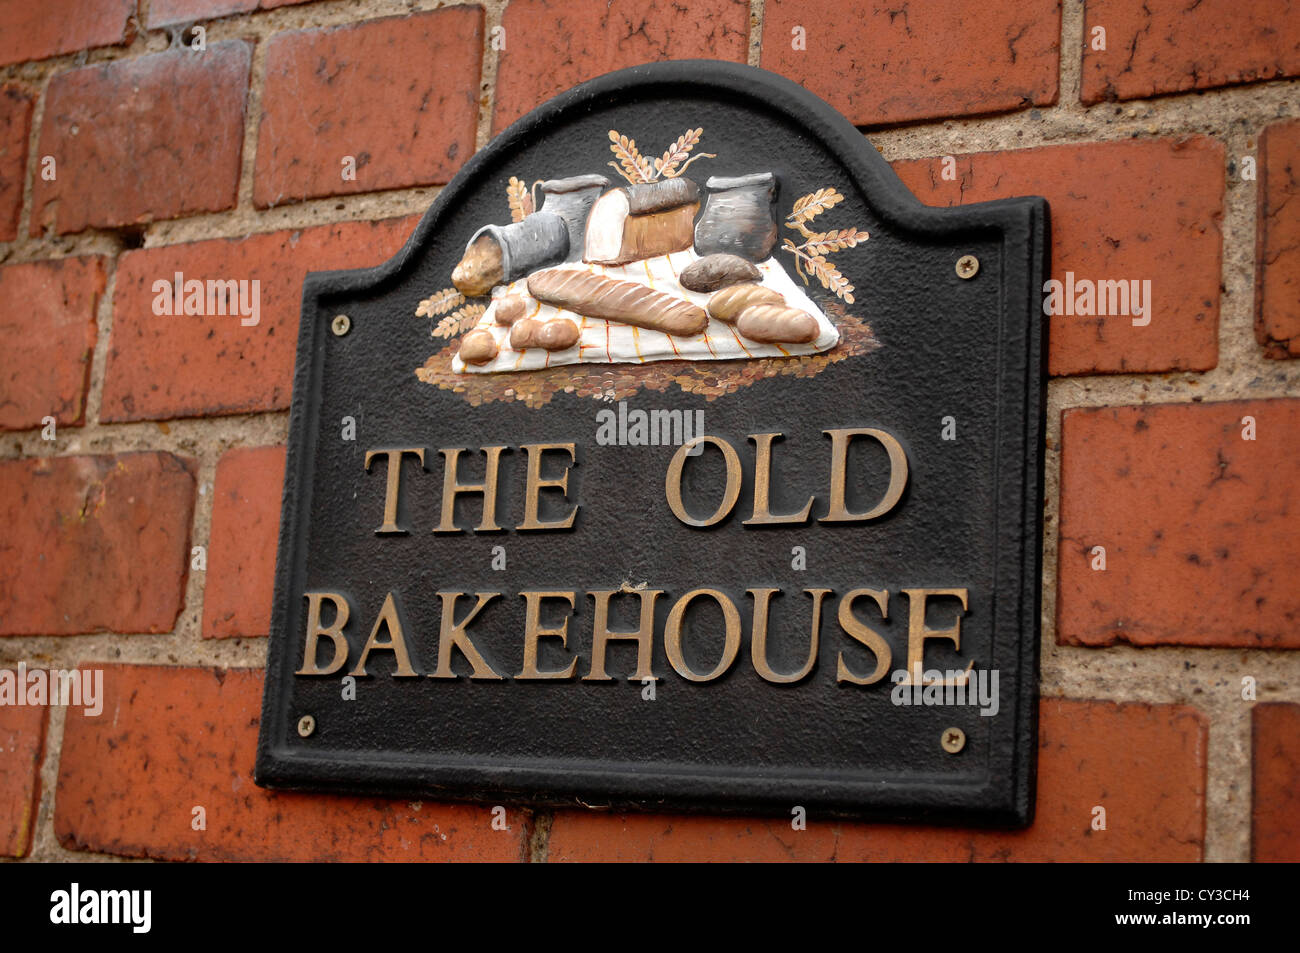 The Old Bakehouse house sign - Stock Image